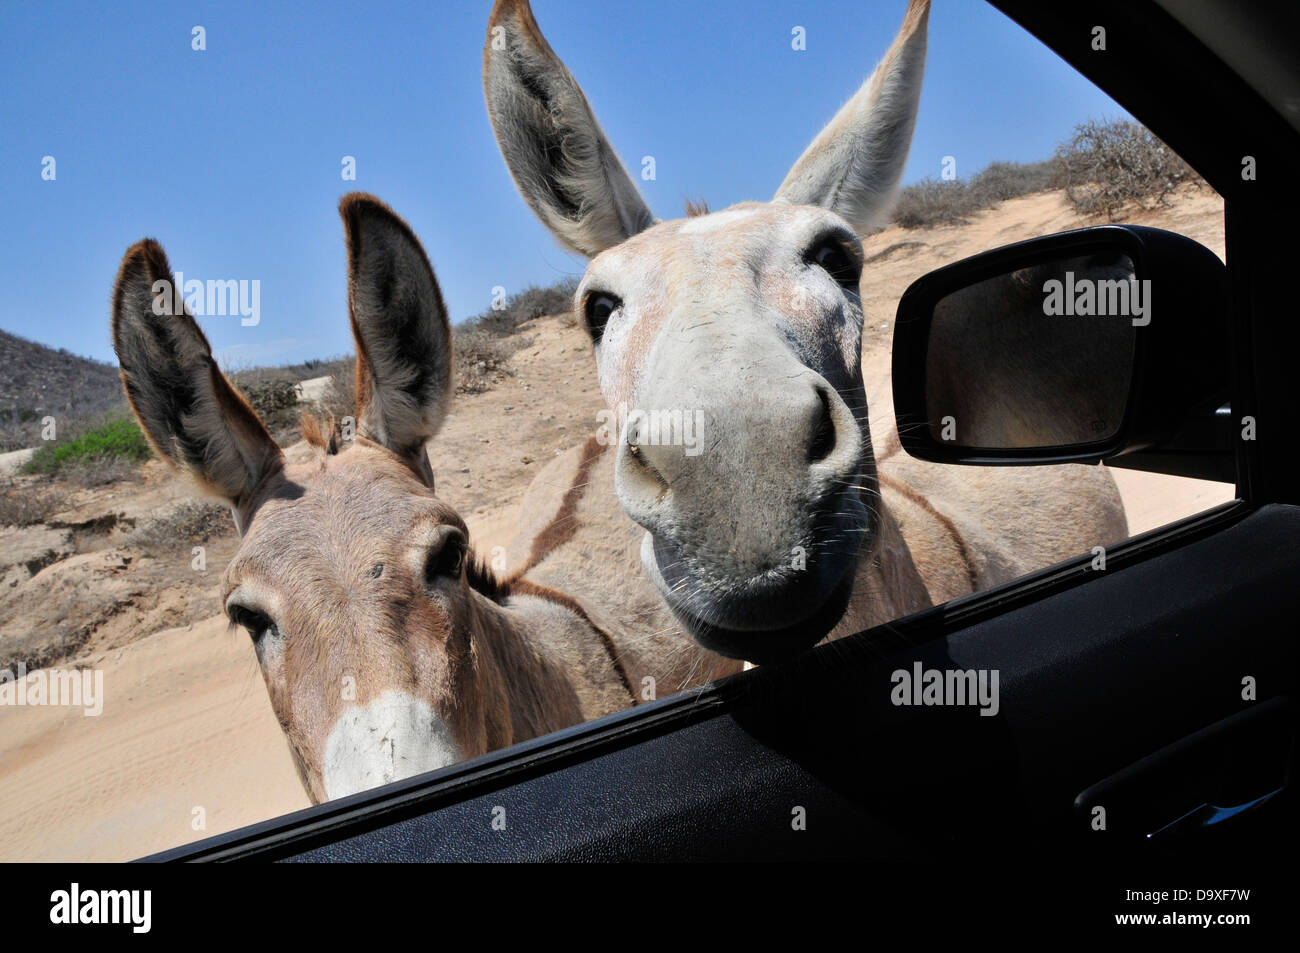 Couple of donkeys pay a surprise visit through a car window in the desert of Baja California. Stock Photo